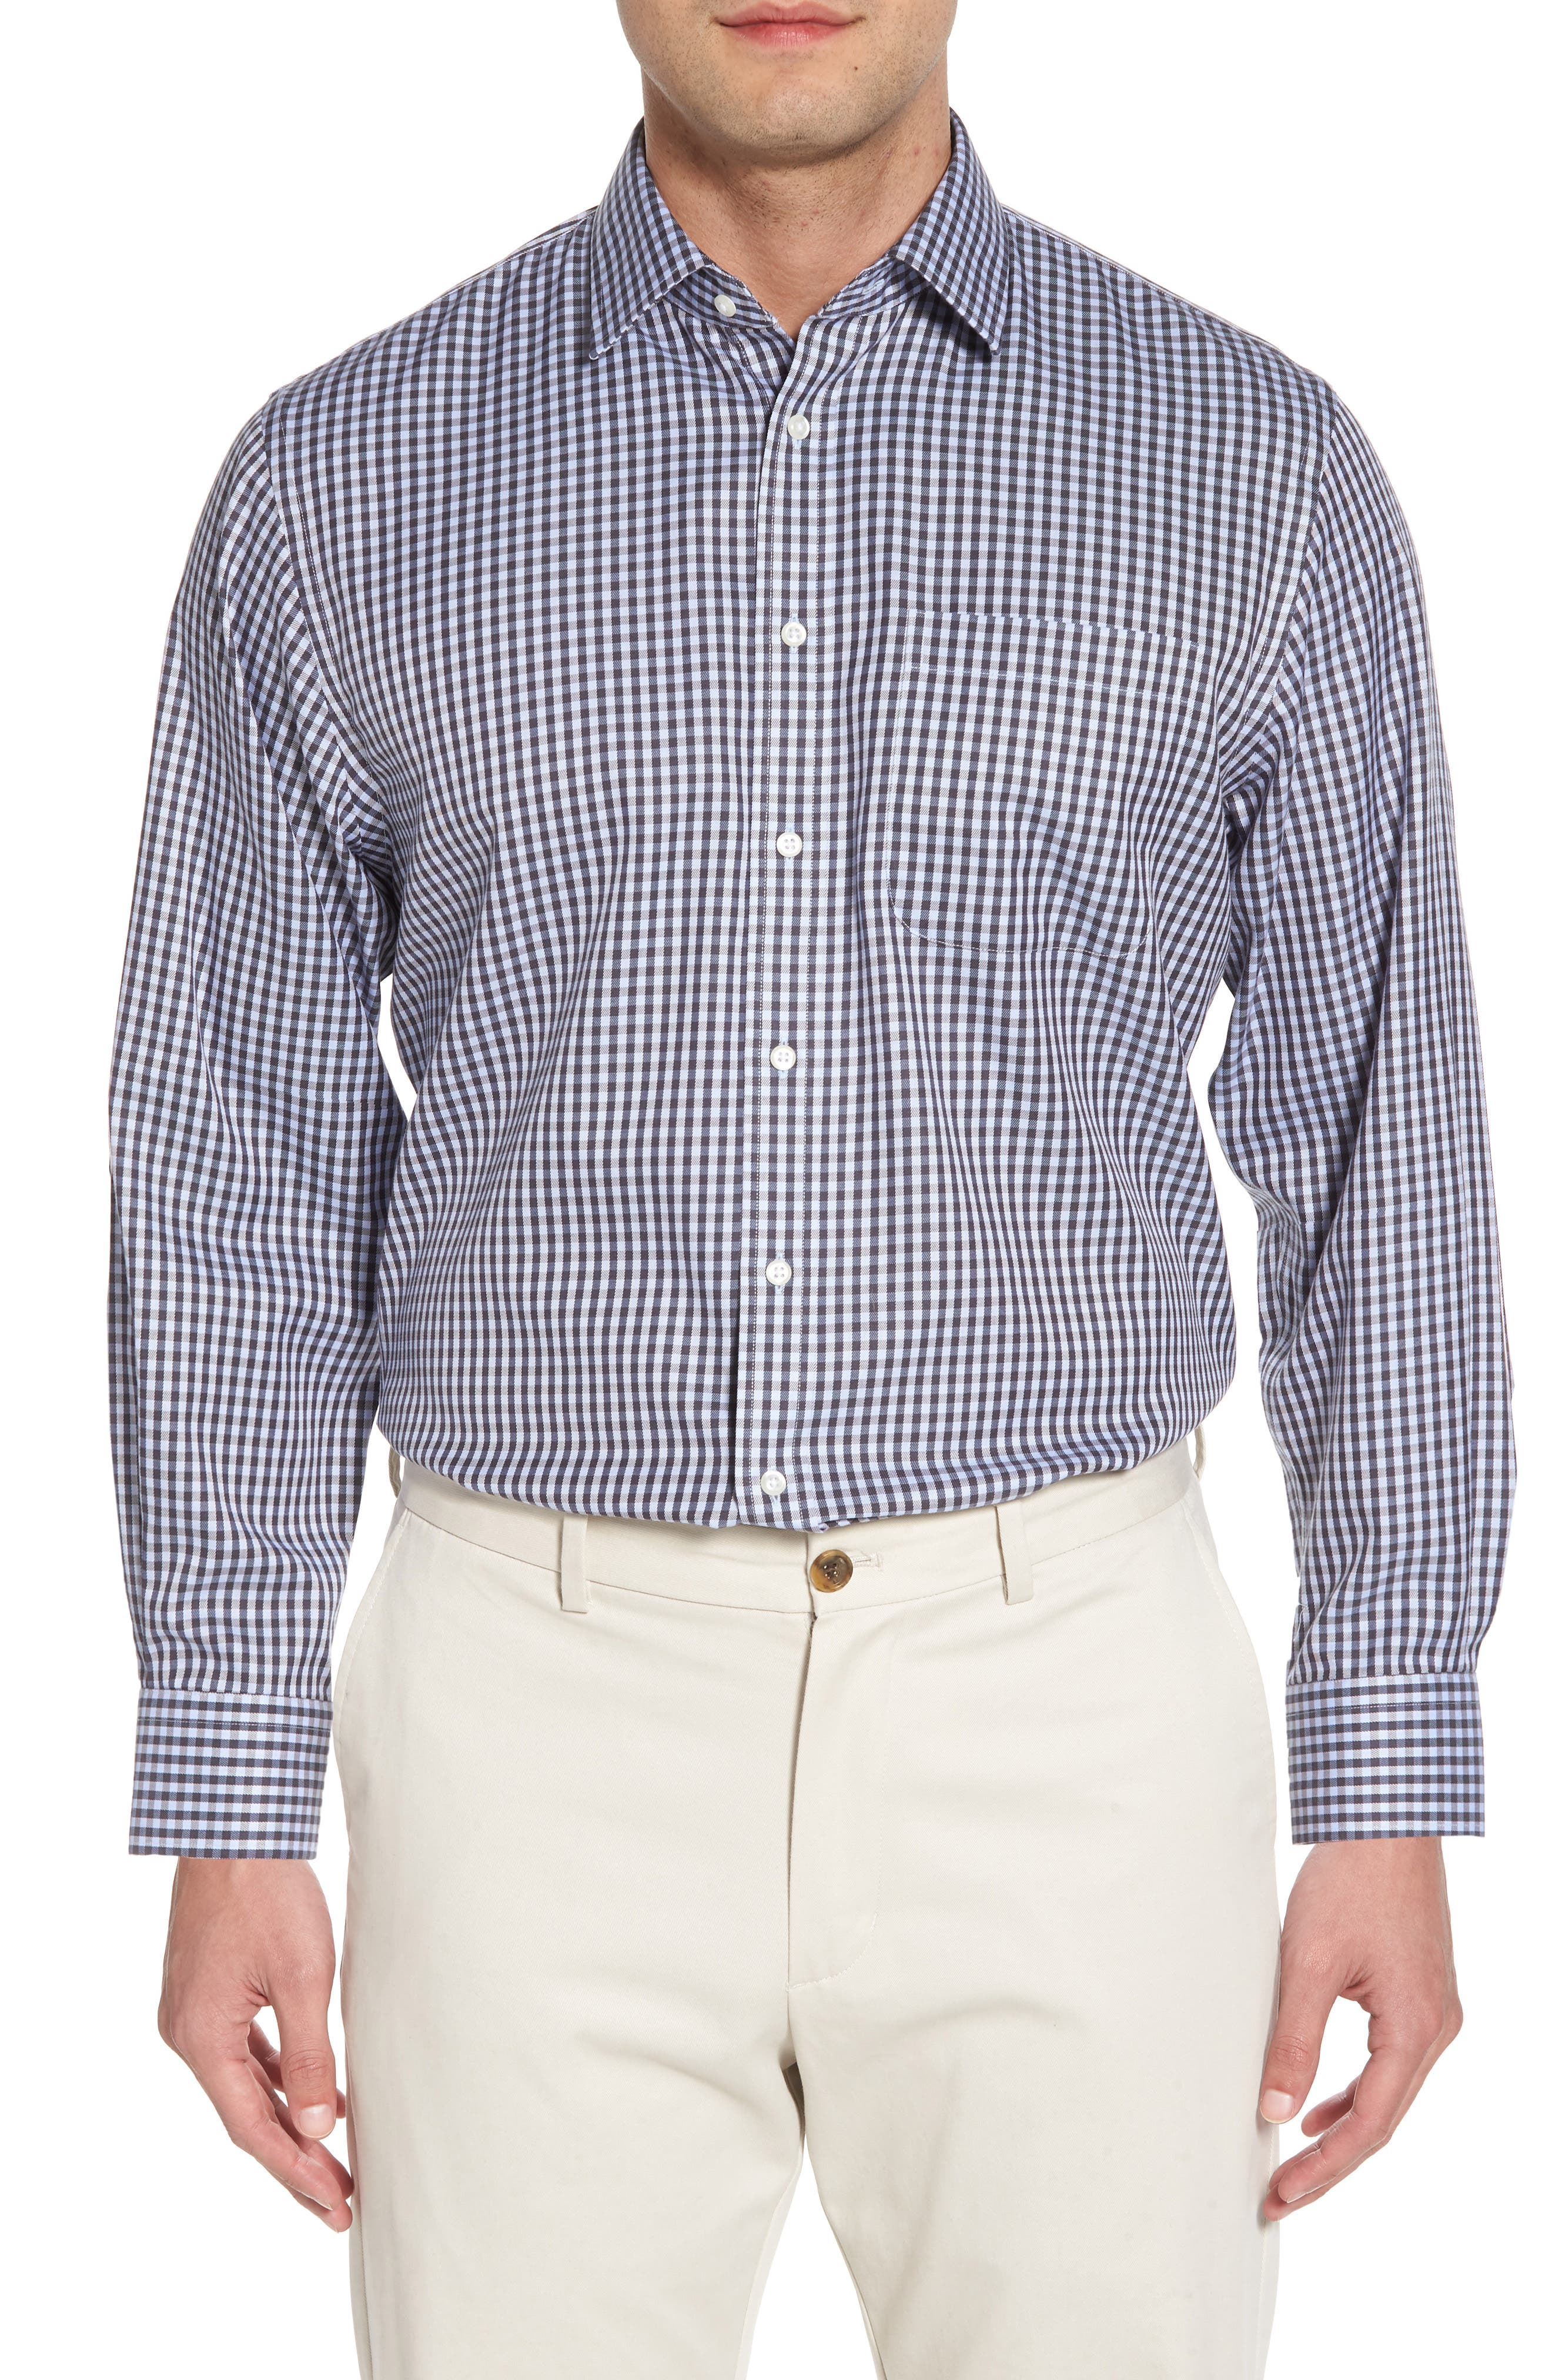 Smartcare<sup>™</sup> Traditional Fit Check Dress Shirt,                             Main thumbnail 1, color,                             021